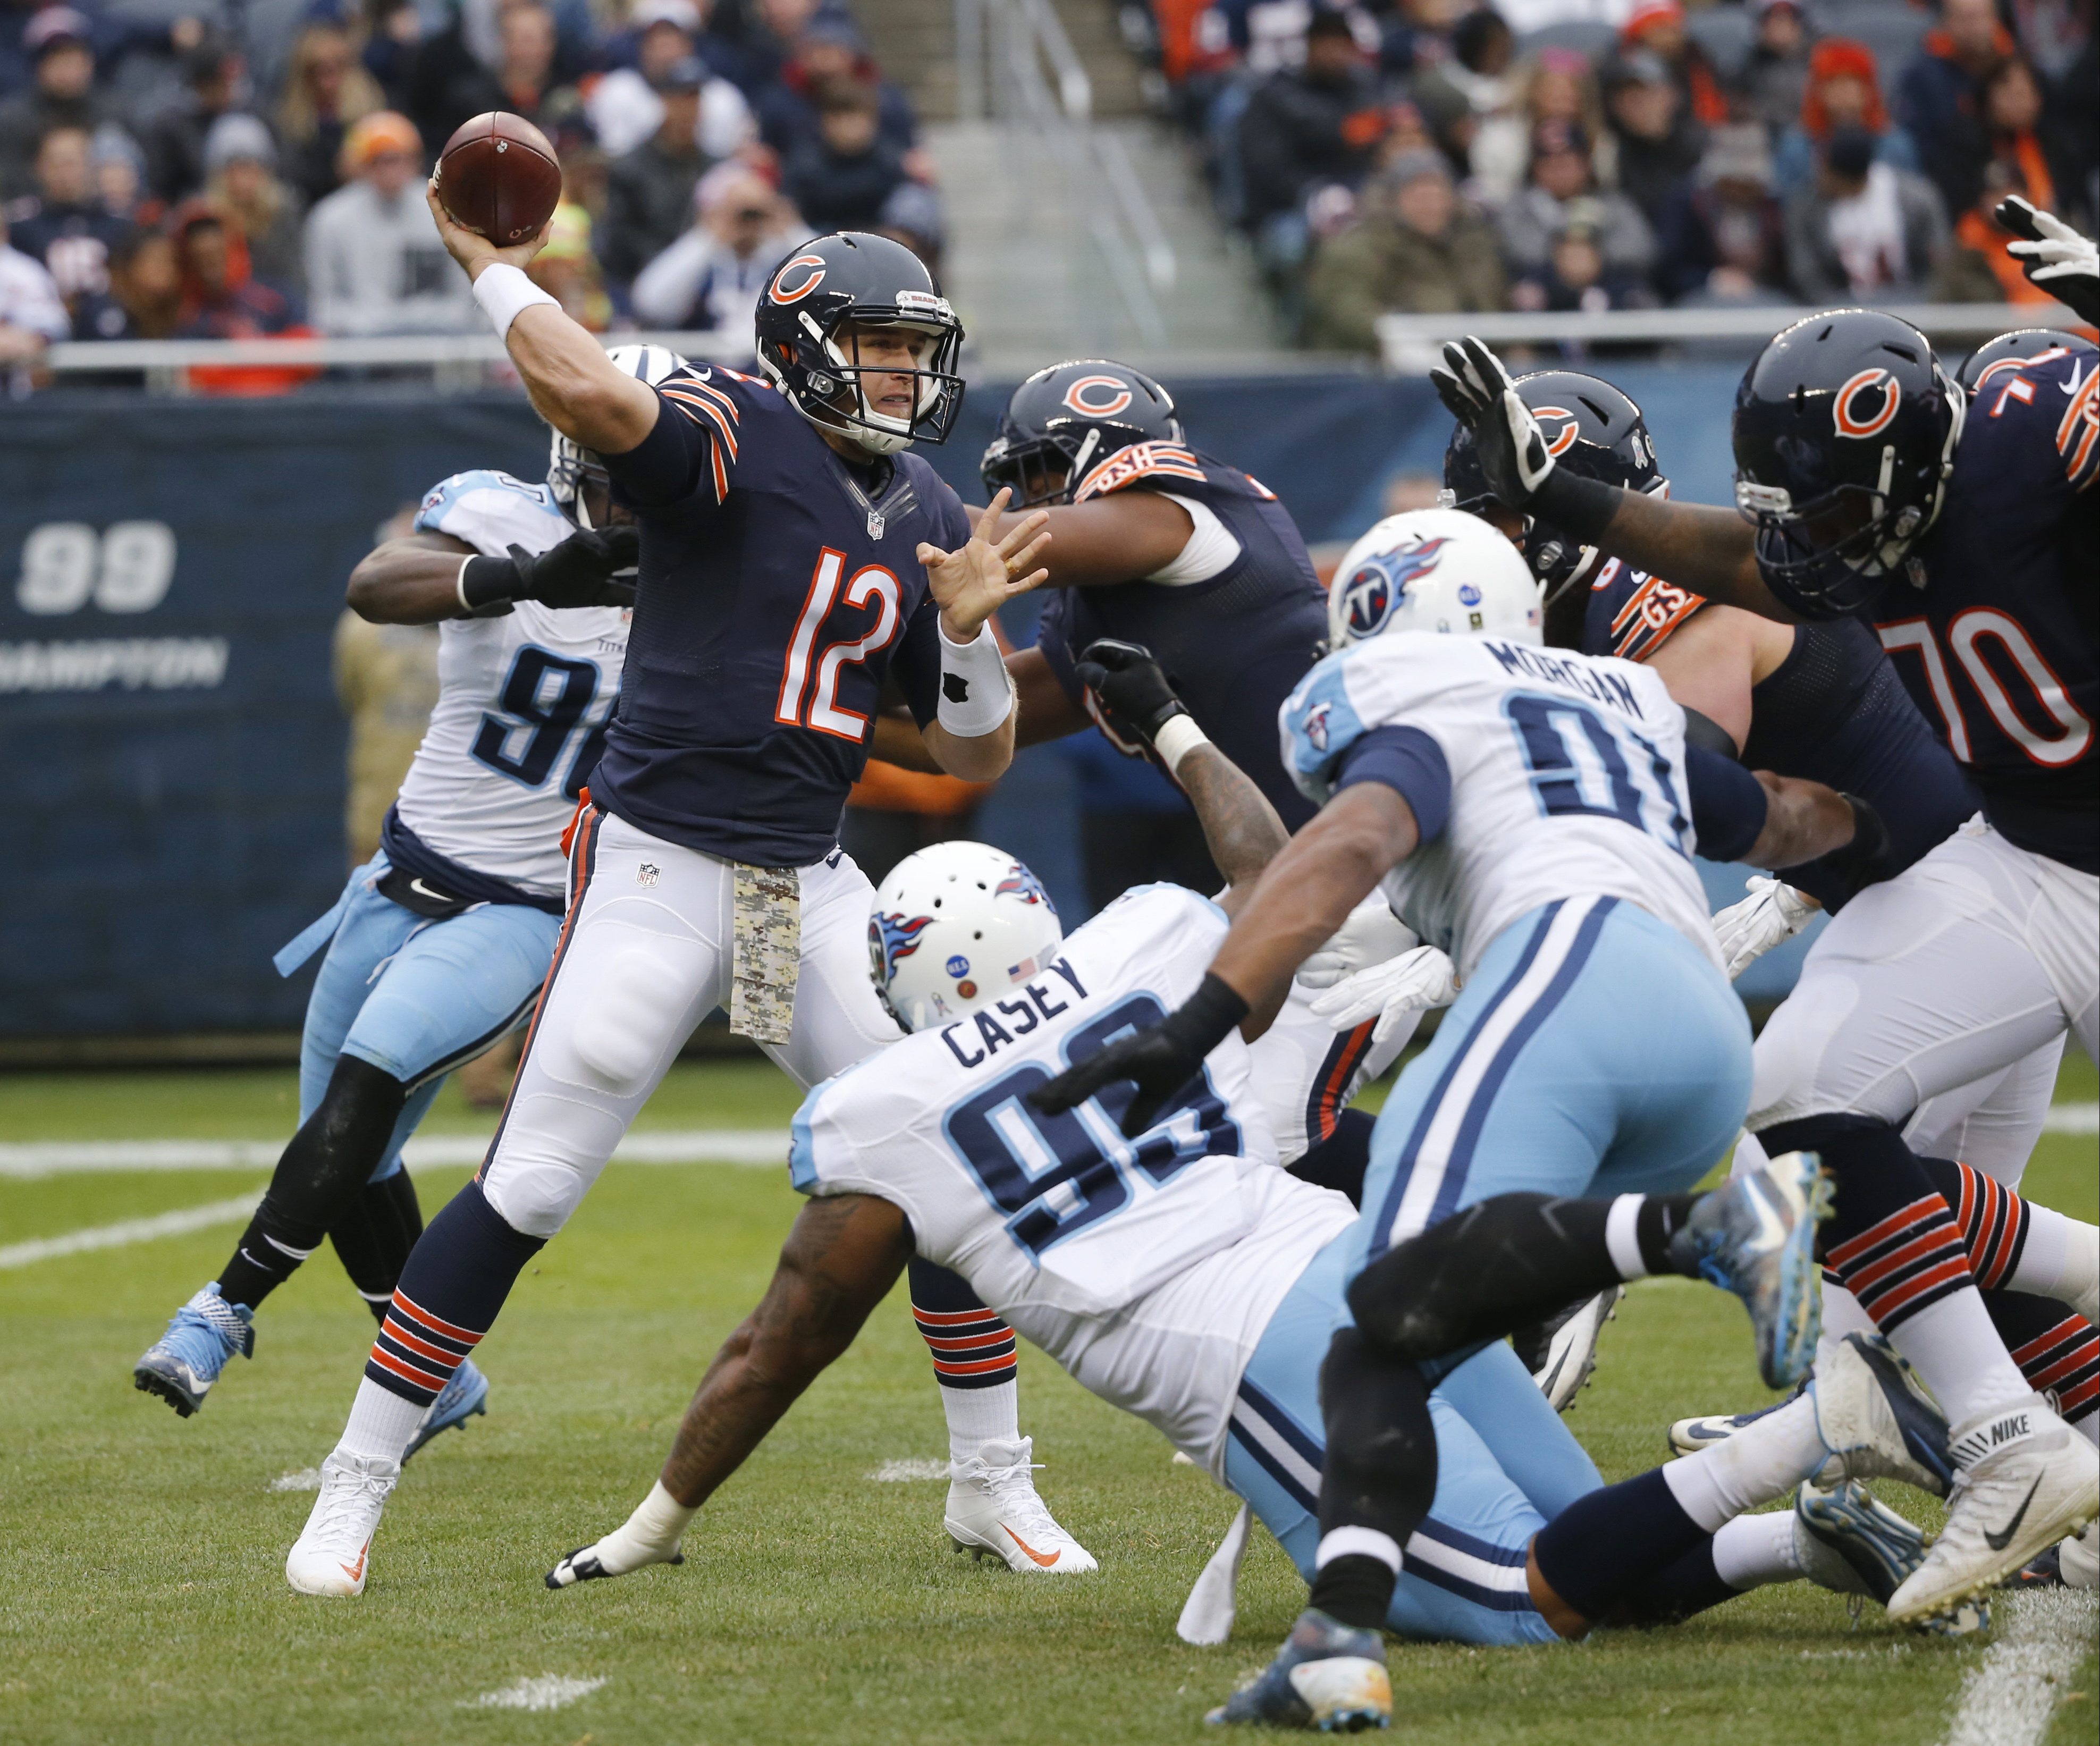 Chicago Bears quarterback Matt Barkley (12) throws a pass under pressure during the first half of an NFL football game against the Tennessee Titans, Sunday, Nov. 27, 2016, in Chicago. (AP Photo/Charles Rex Arbogast)